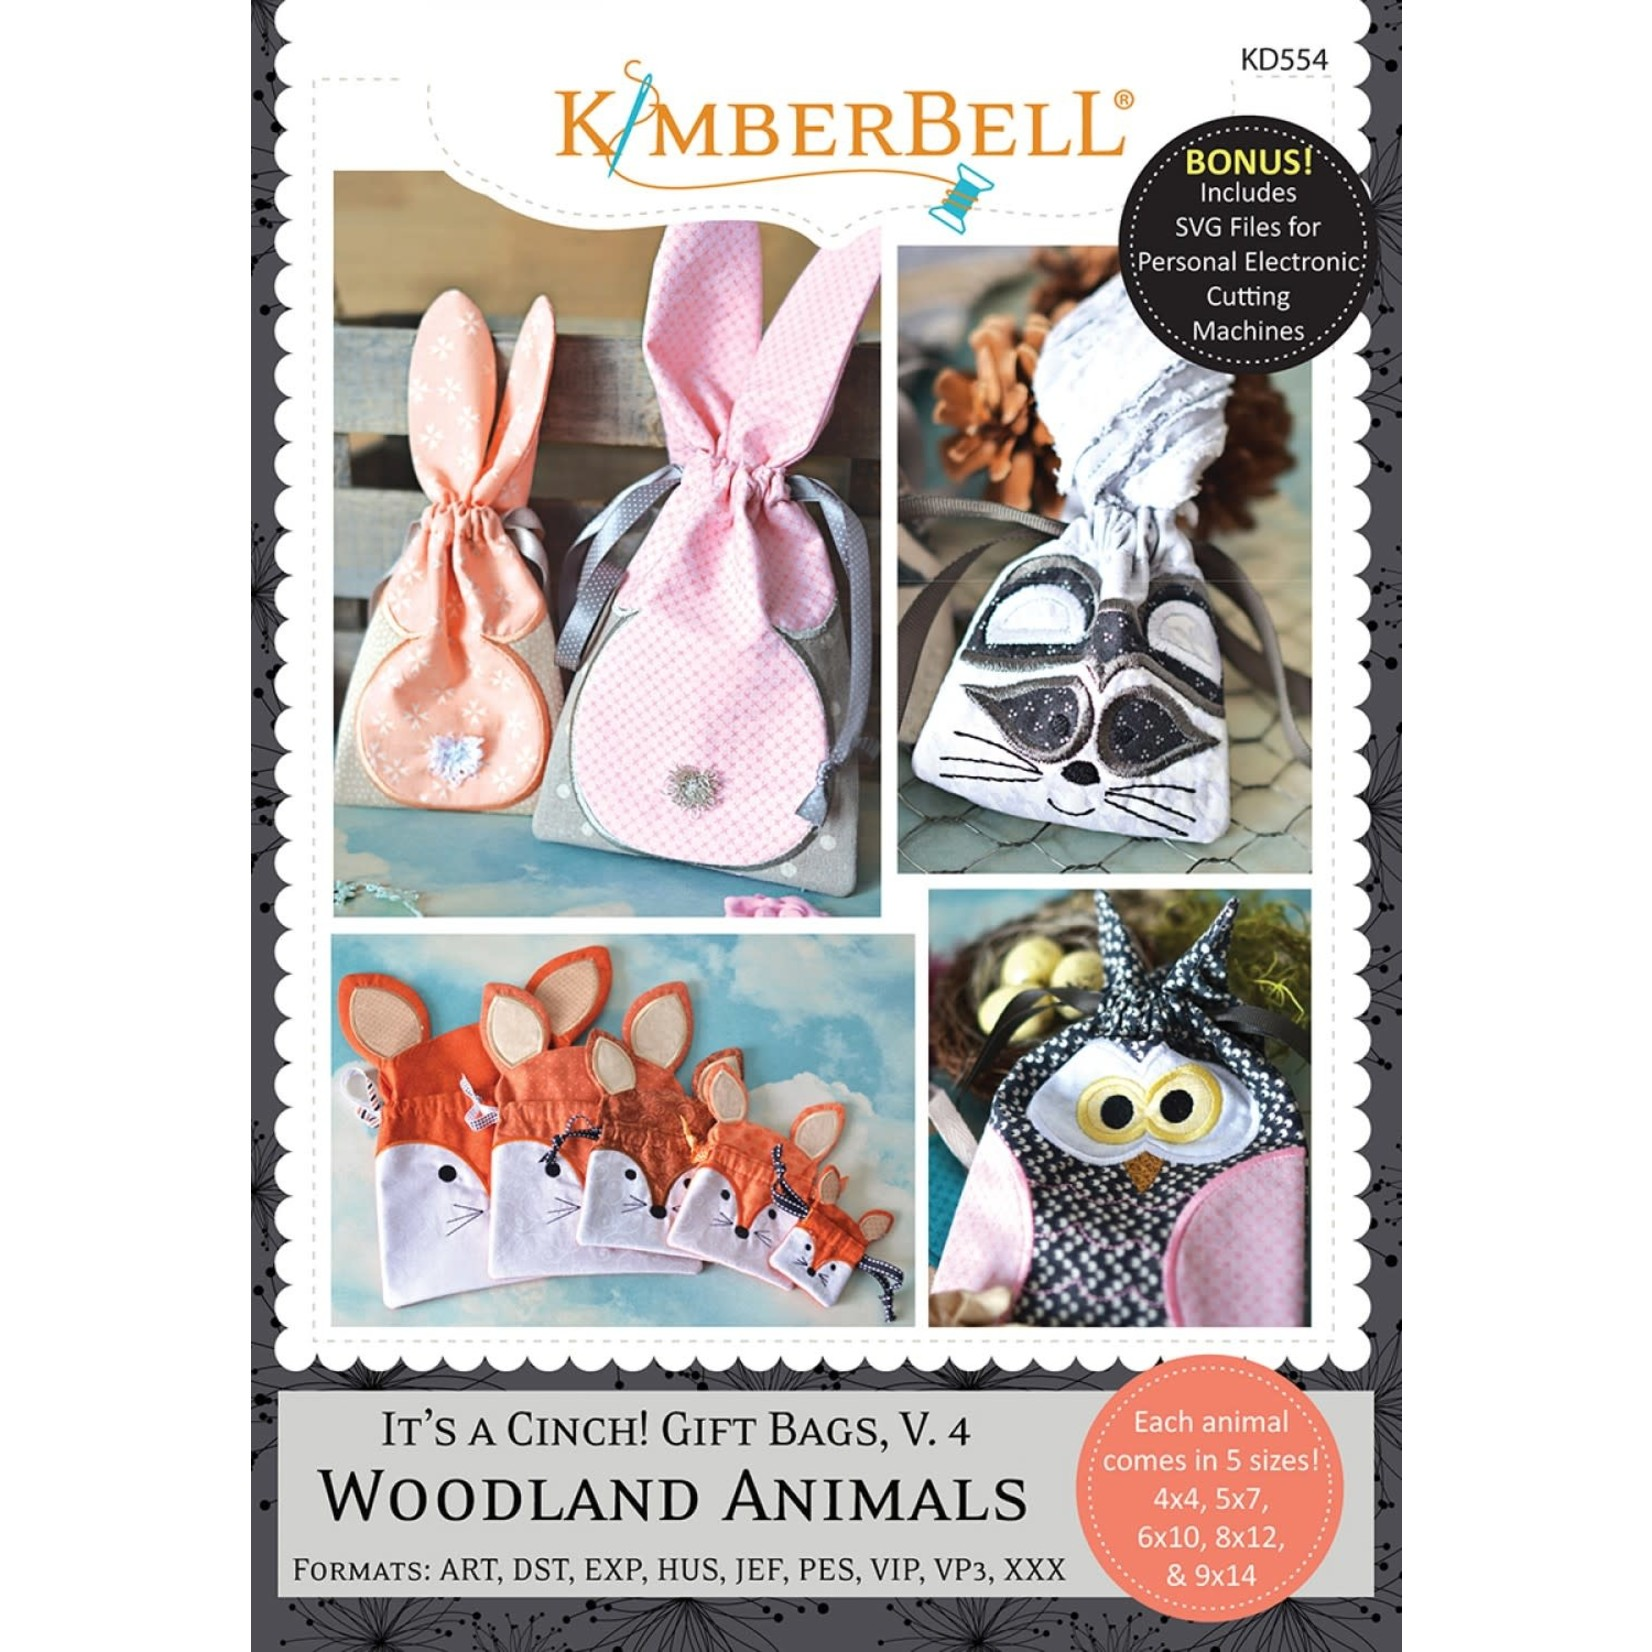 KIMBERBELL DESIGNS It's a Cinch! Gift Bags, Volume 4, Woodland Animals Machine Embroidery CD